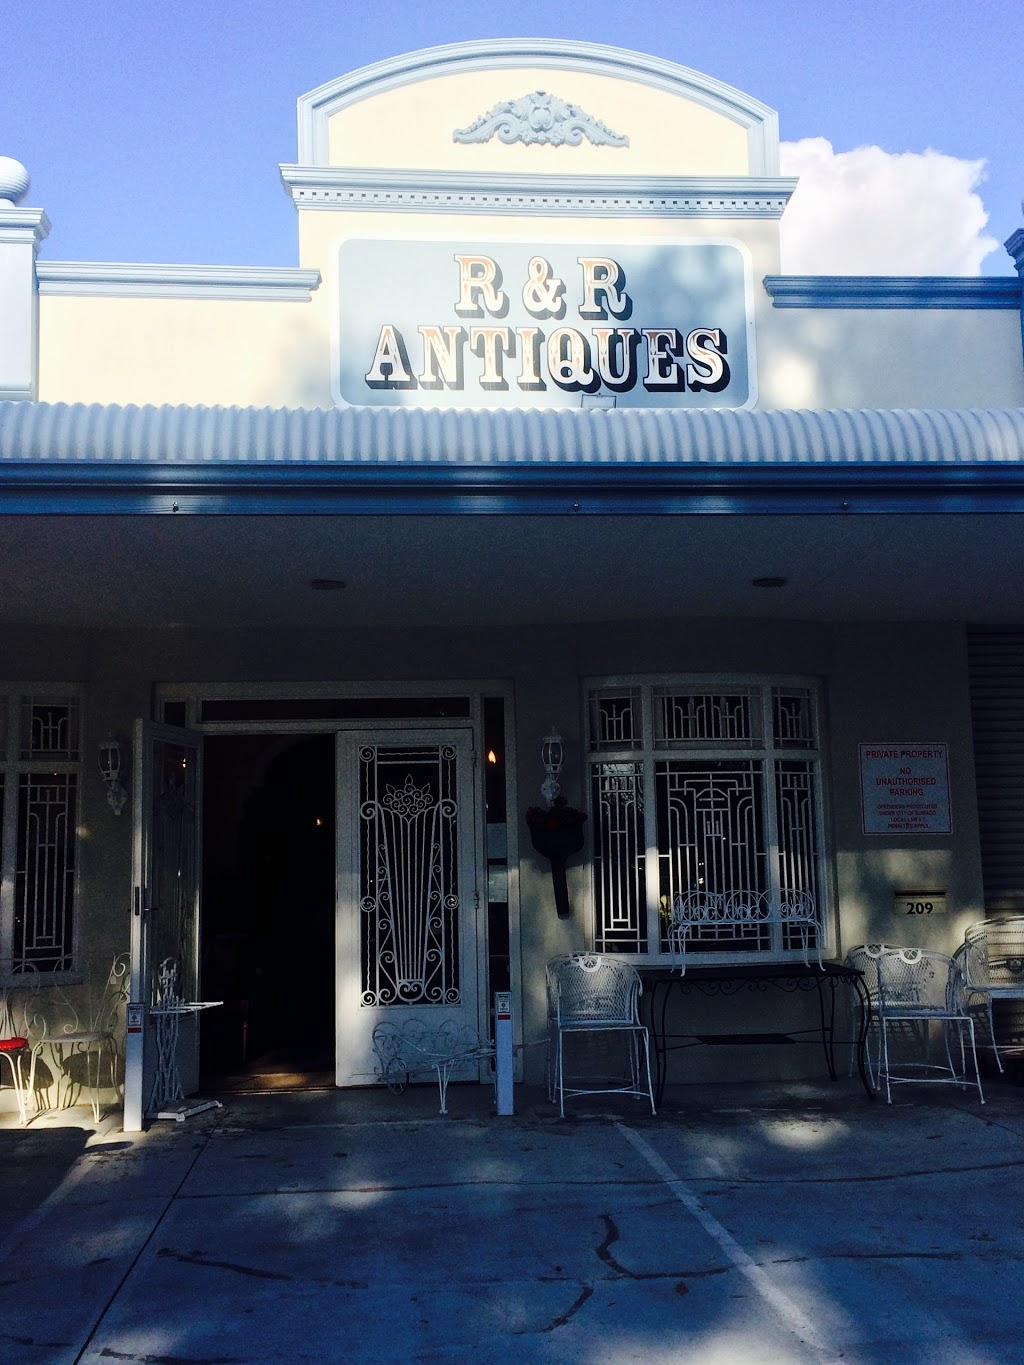 R&R Imports Antiques | furniture store | 209 Railway Rd, Subiaco WA 6008, Australia | 0893814350 OR +61 8 9381 4350